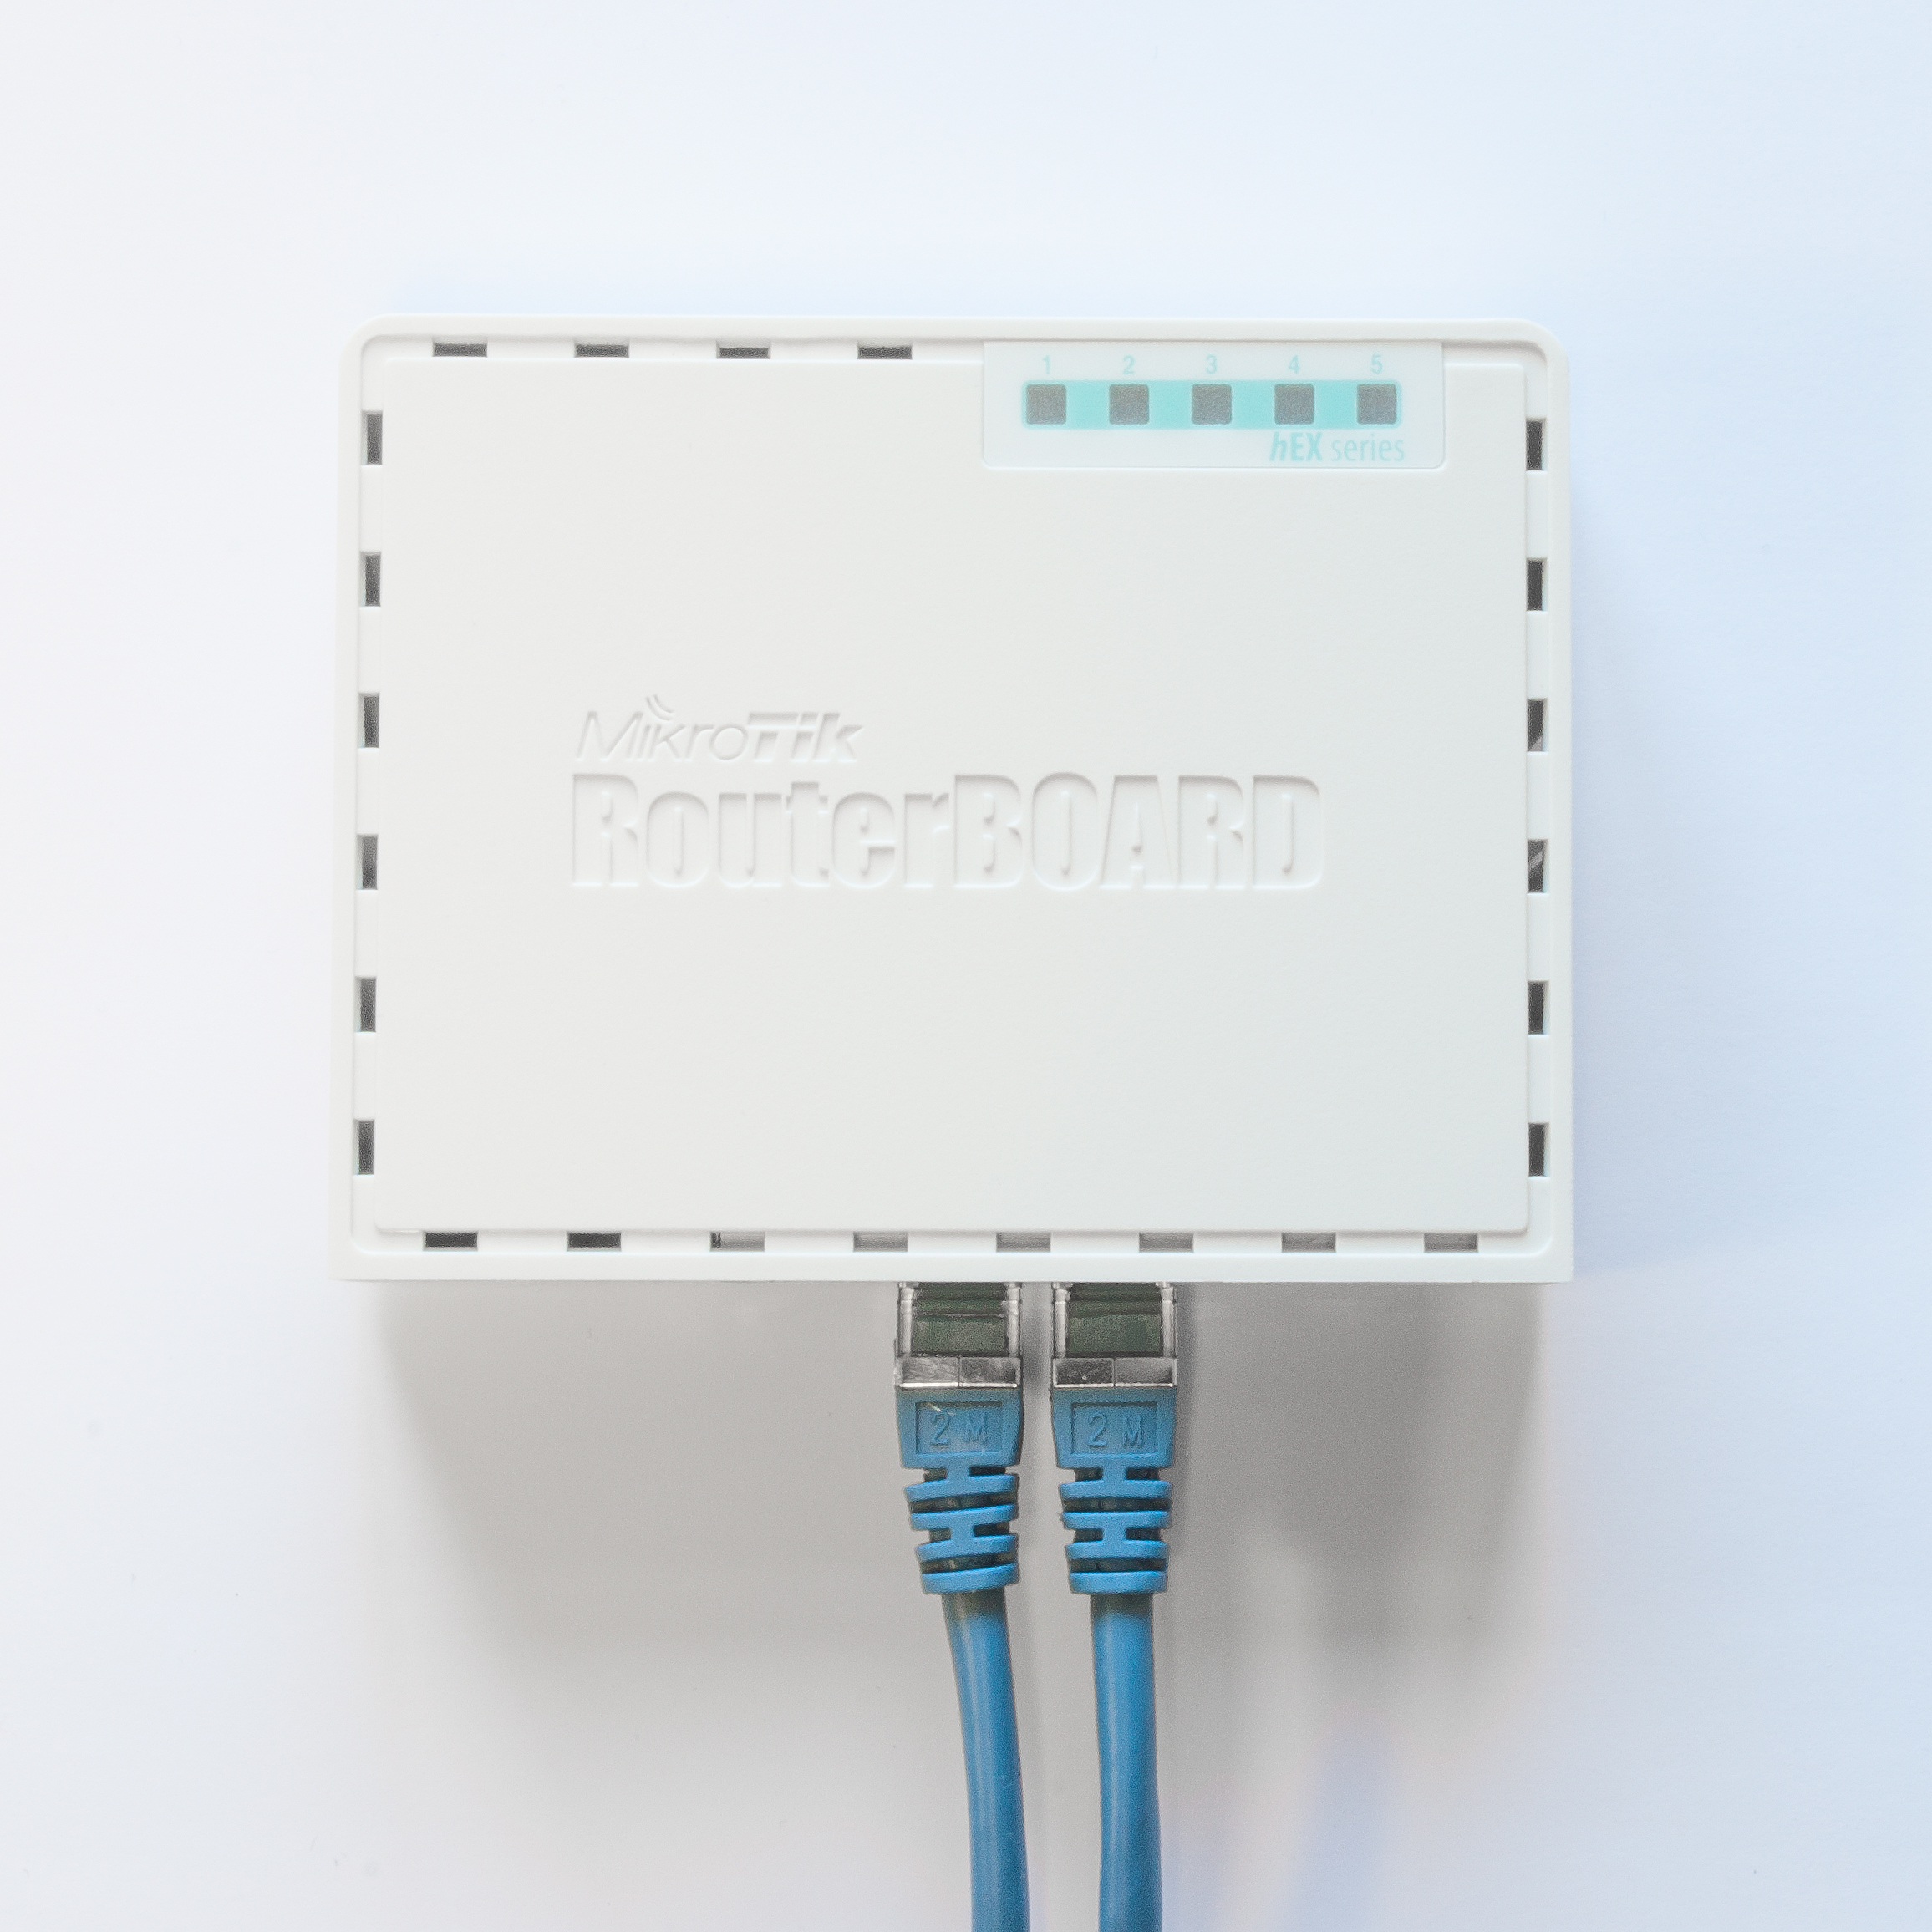 MikroTik Routers and Wireless - Products: hEX